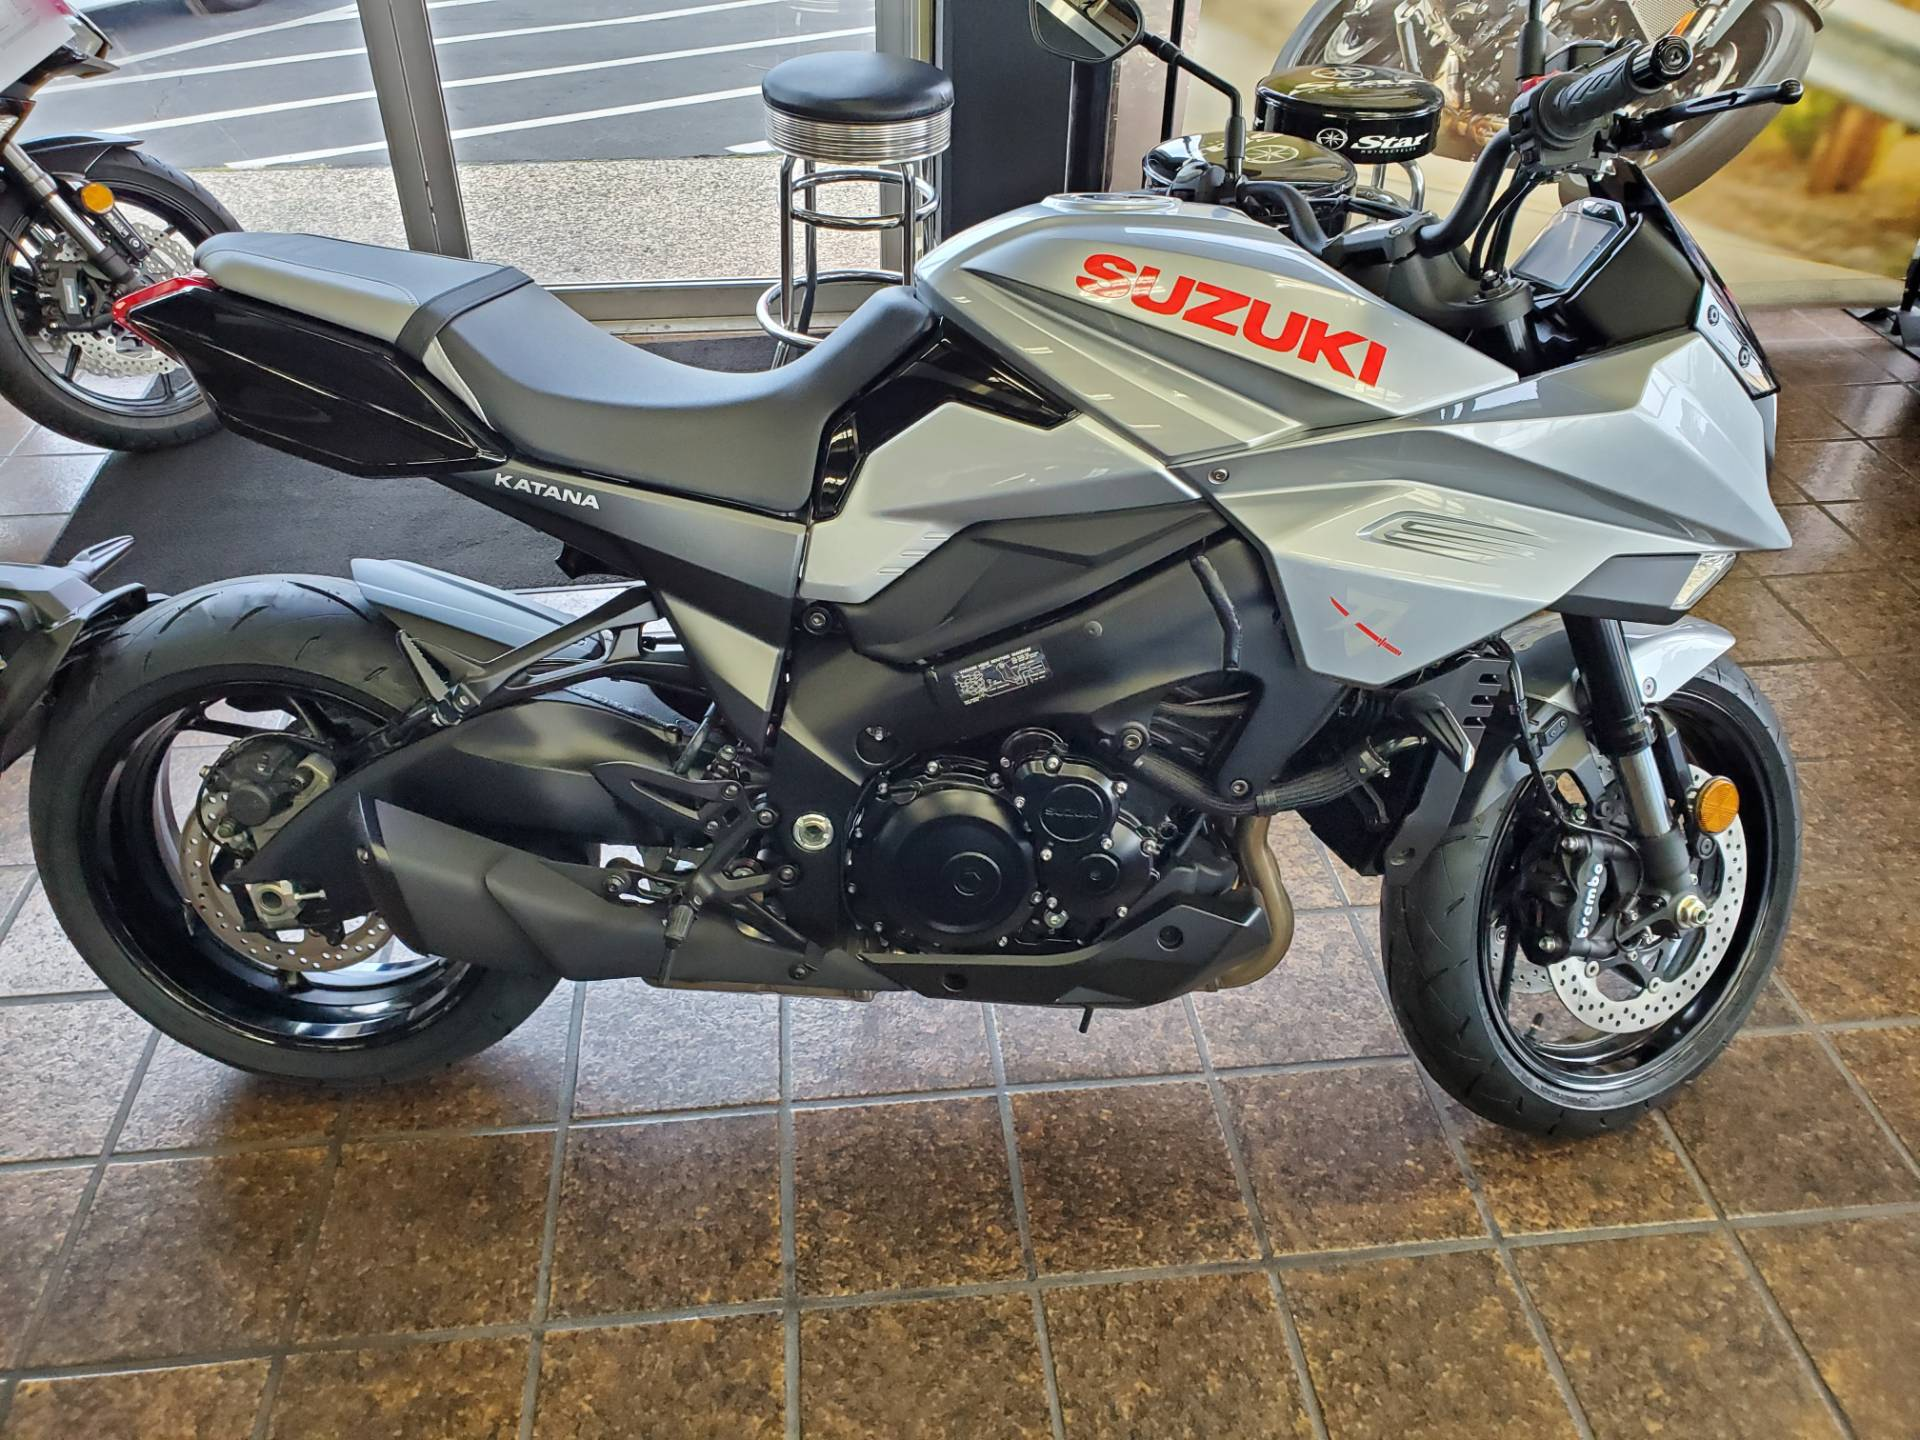 2020 Suzuki Katana in Sacramento, California - Photo 5